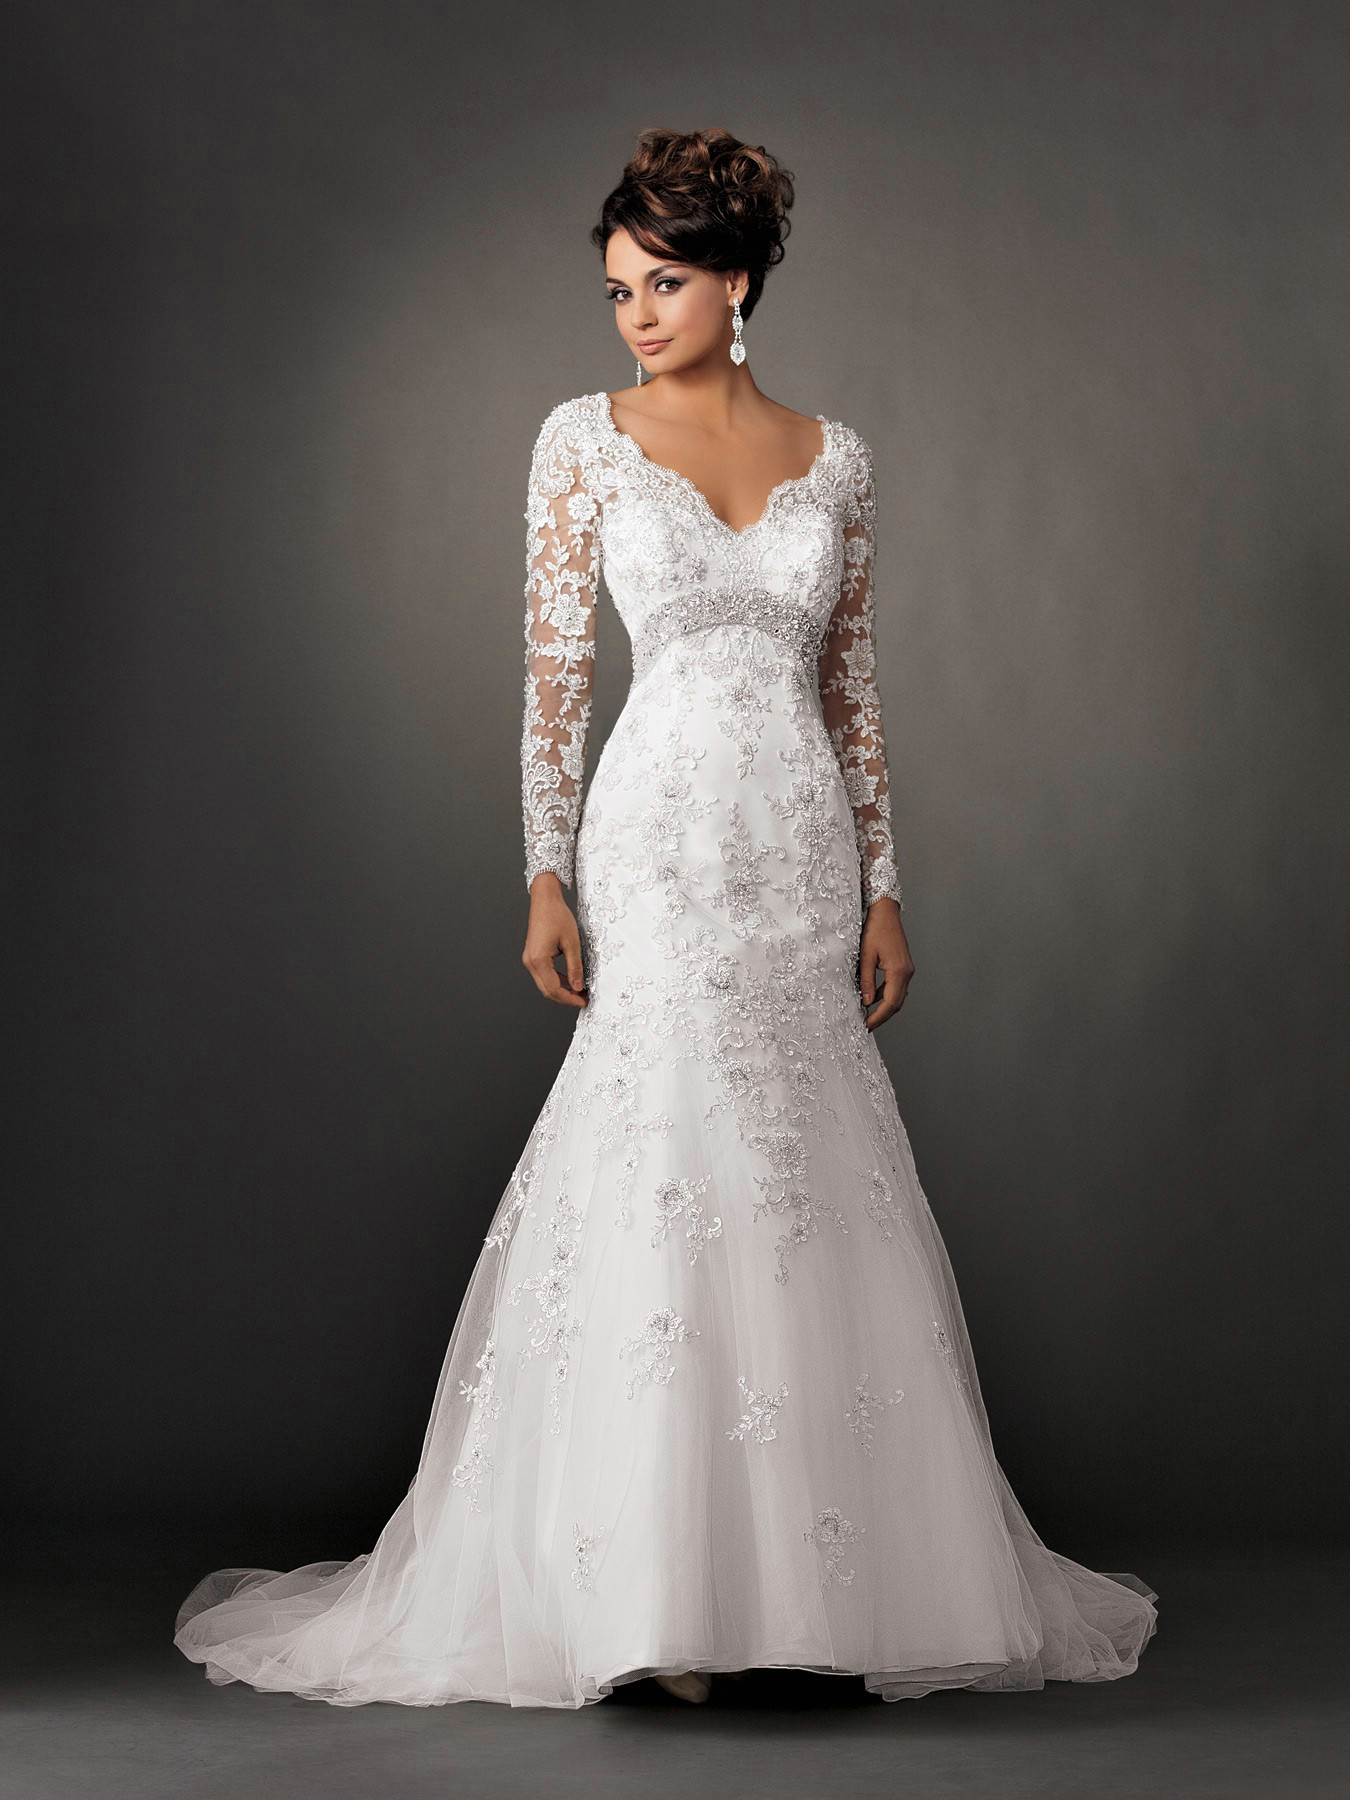 long sleeved v-neckline lace wedding dress with floor length